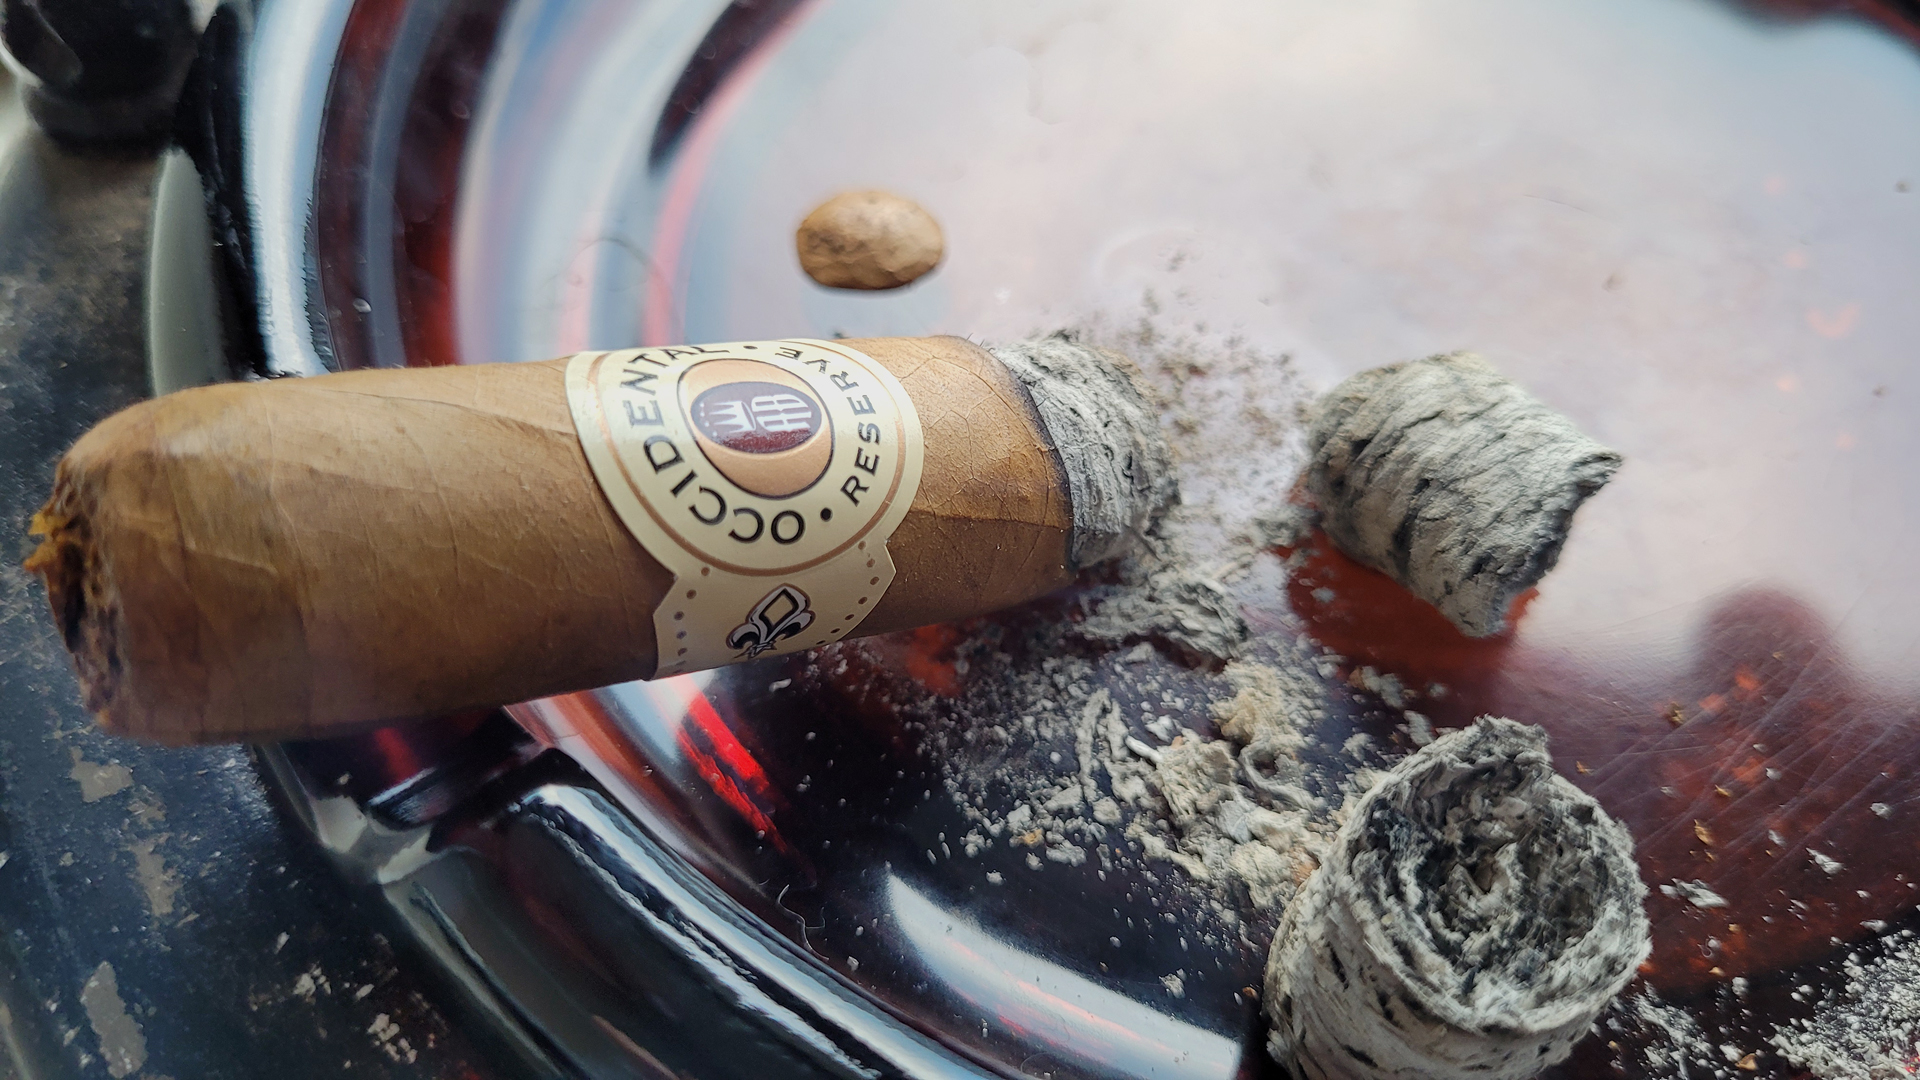 Occidental Reserve Connecticut robusto cigar review Part 3